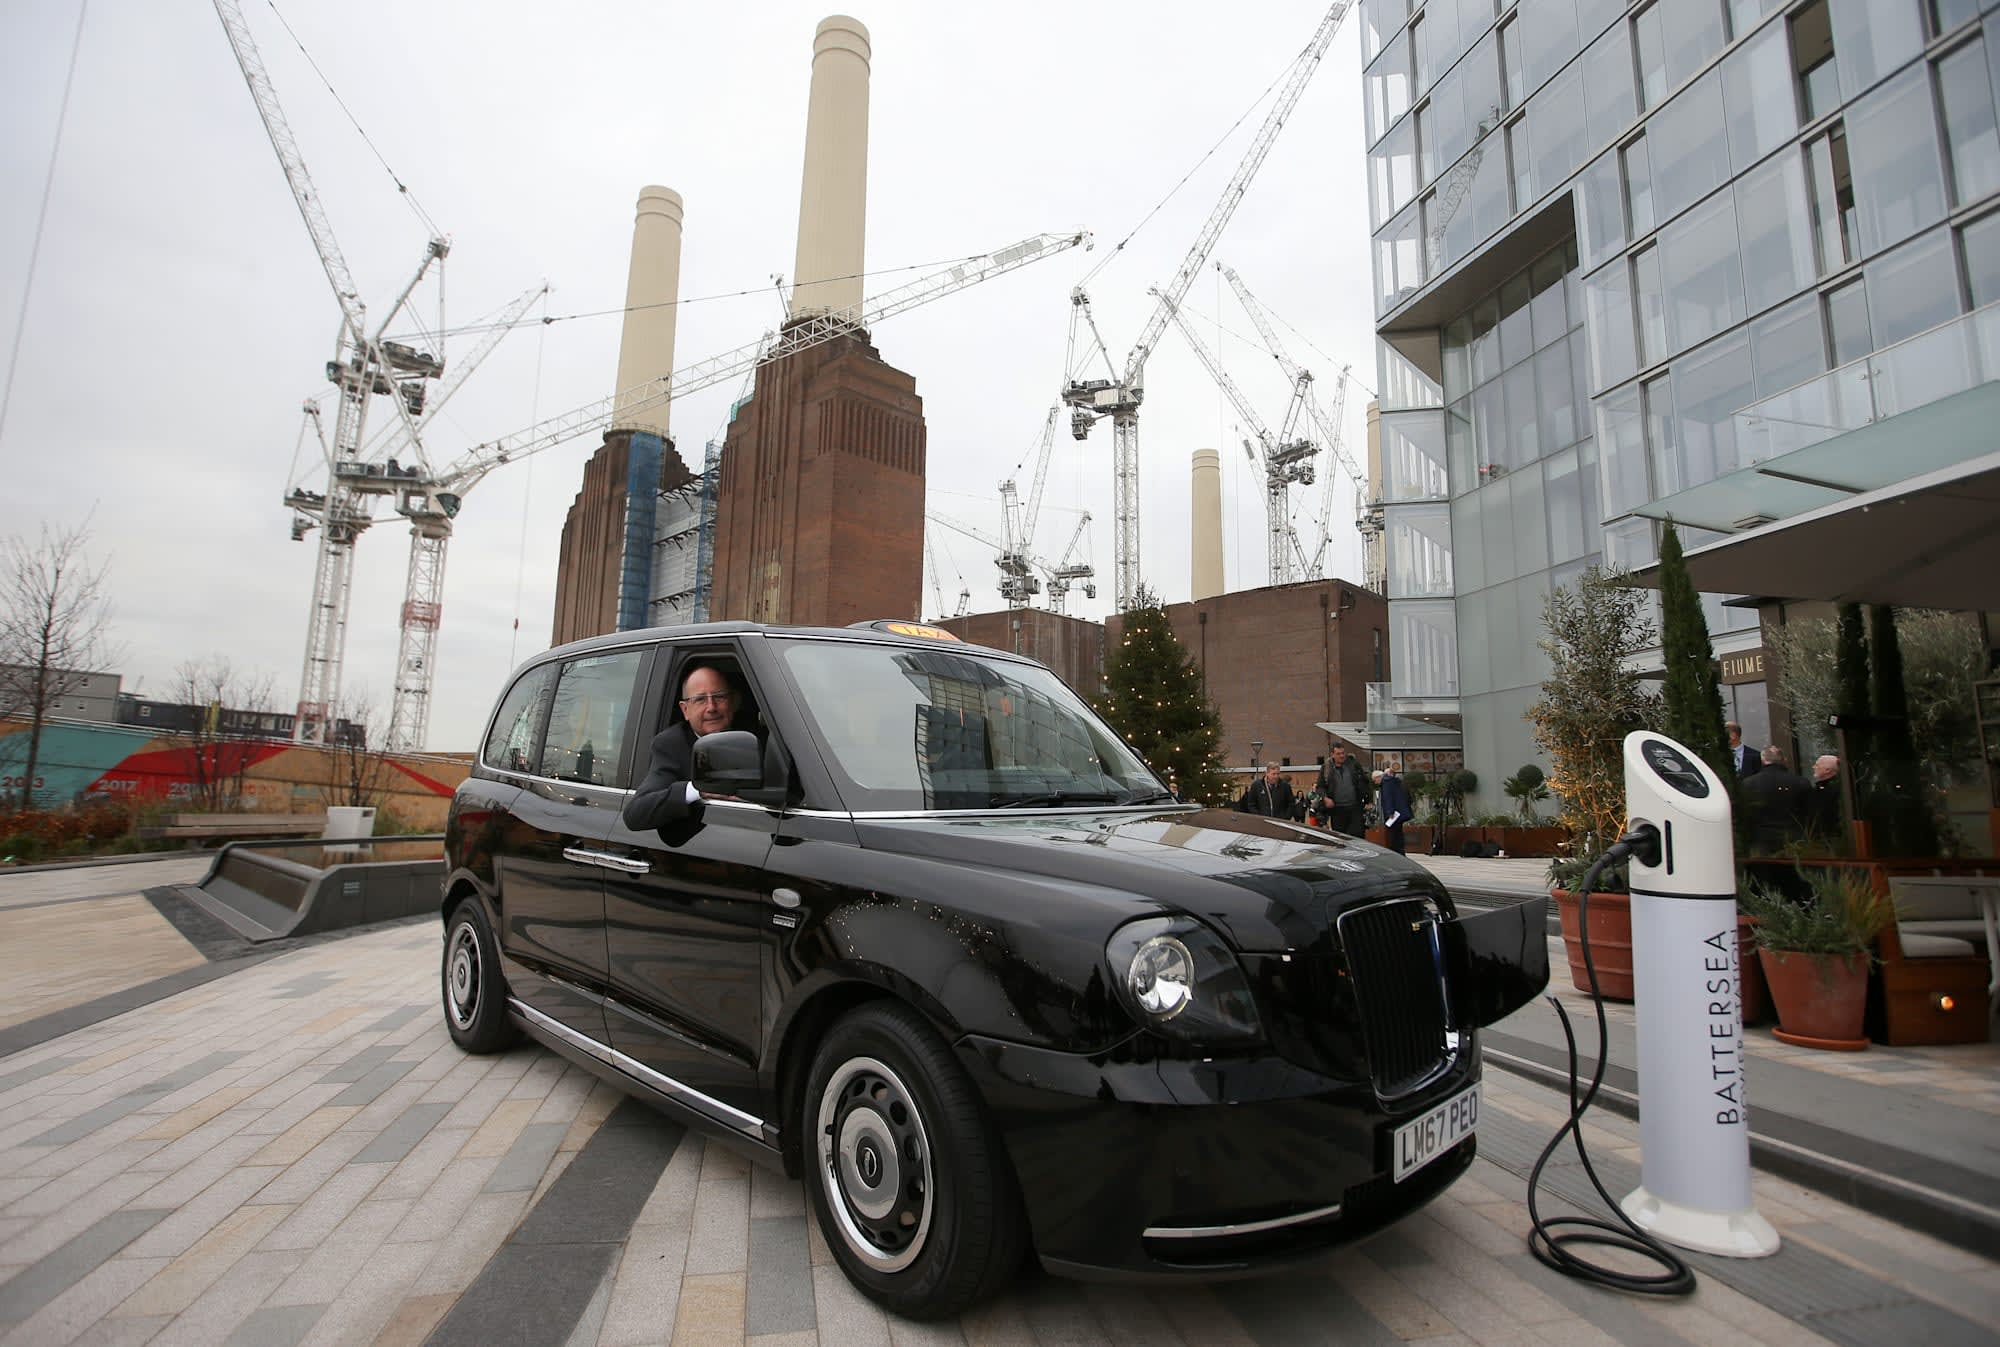 London's new electric taxis scuppered by faulty sensor